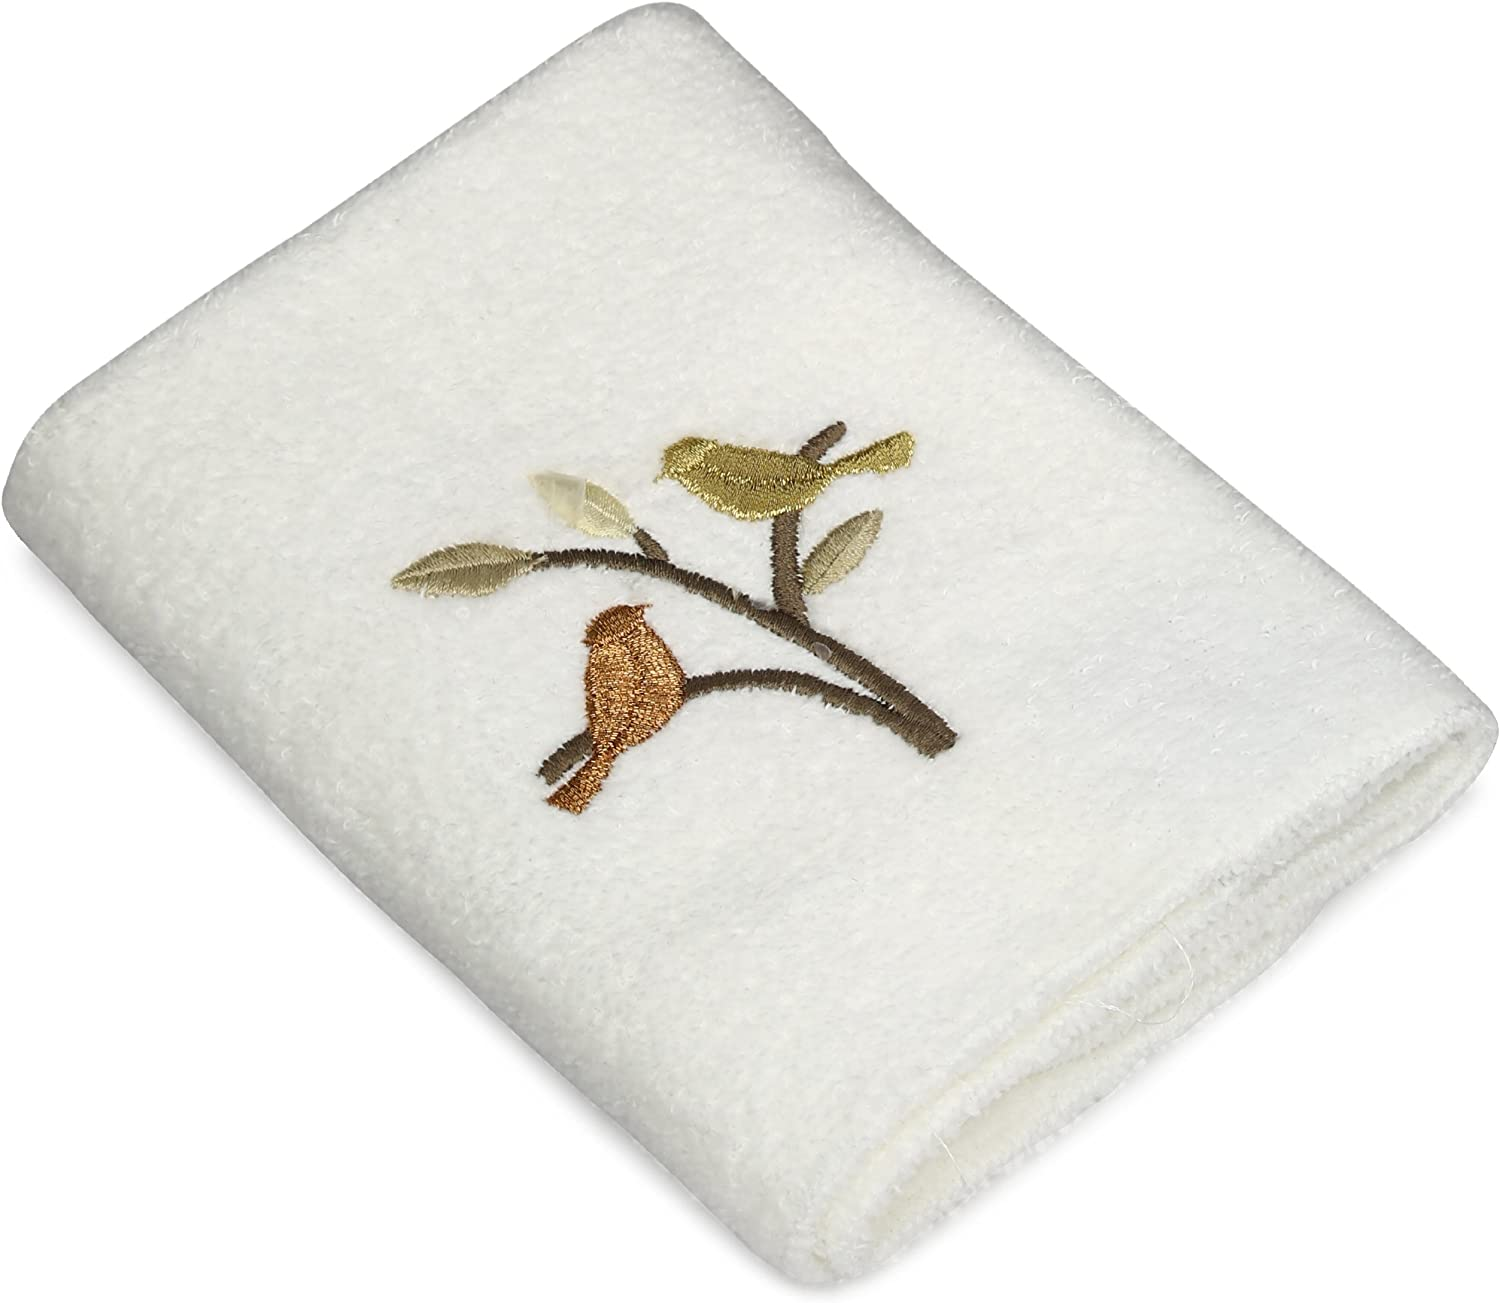 Avanti Linens Friendly Gathering Wash Cloth, White